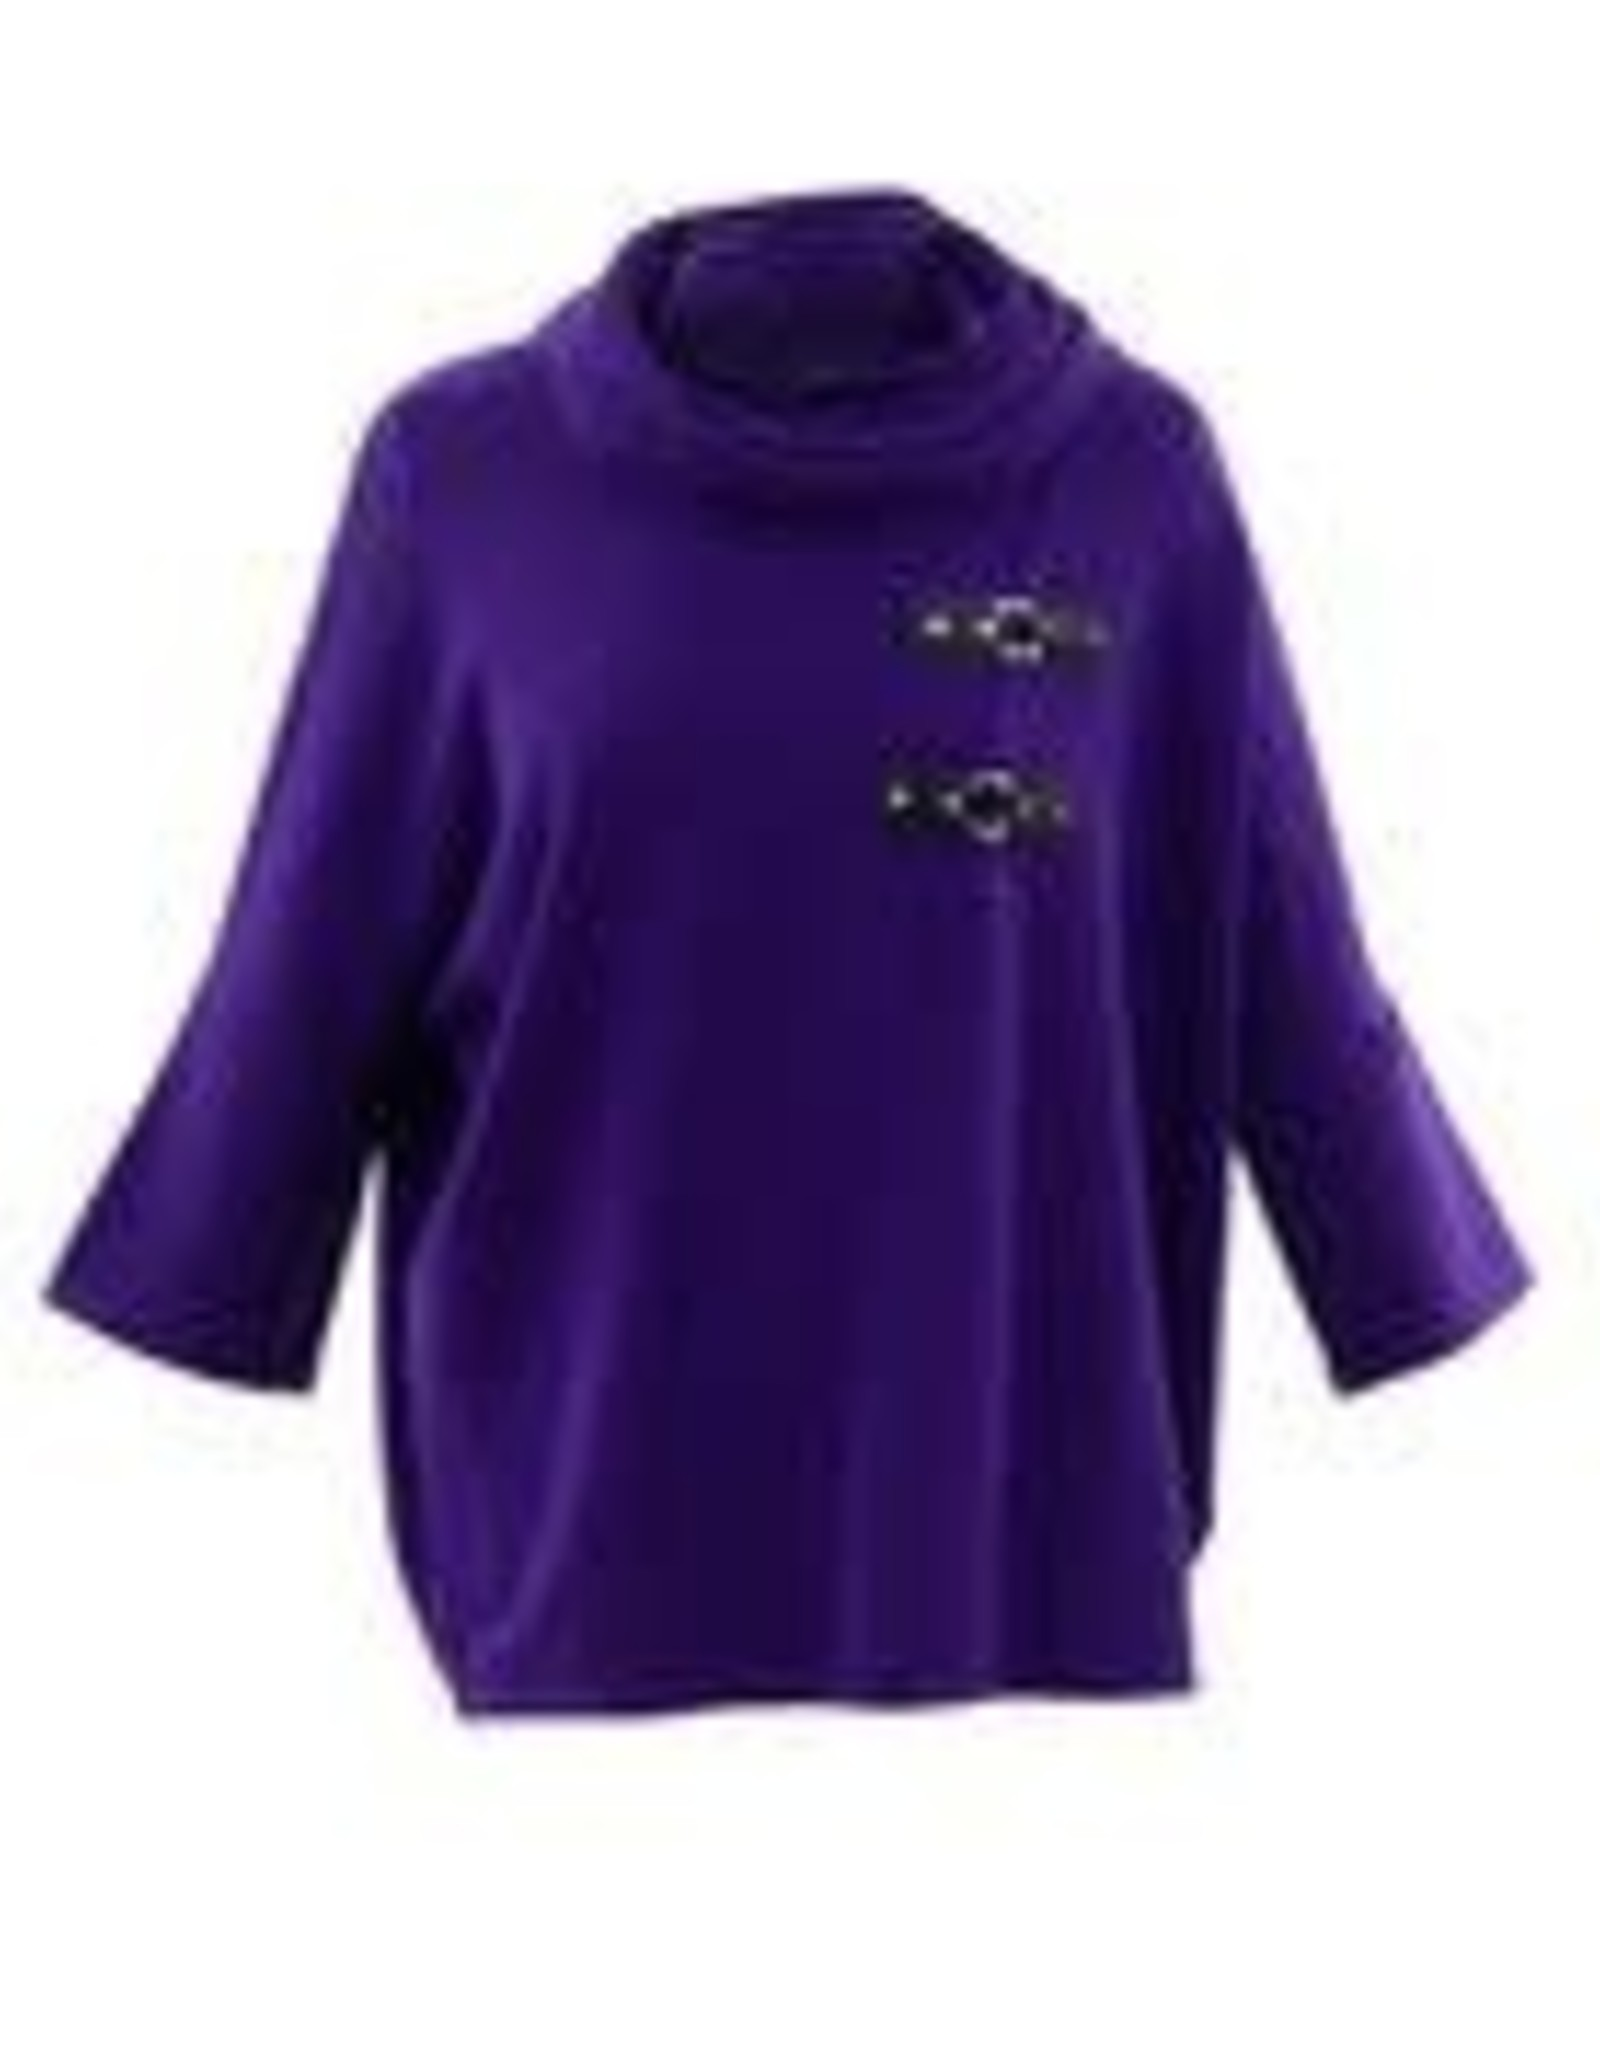 Marble Marble Fashions Buckle Sweater